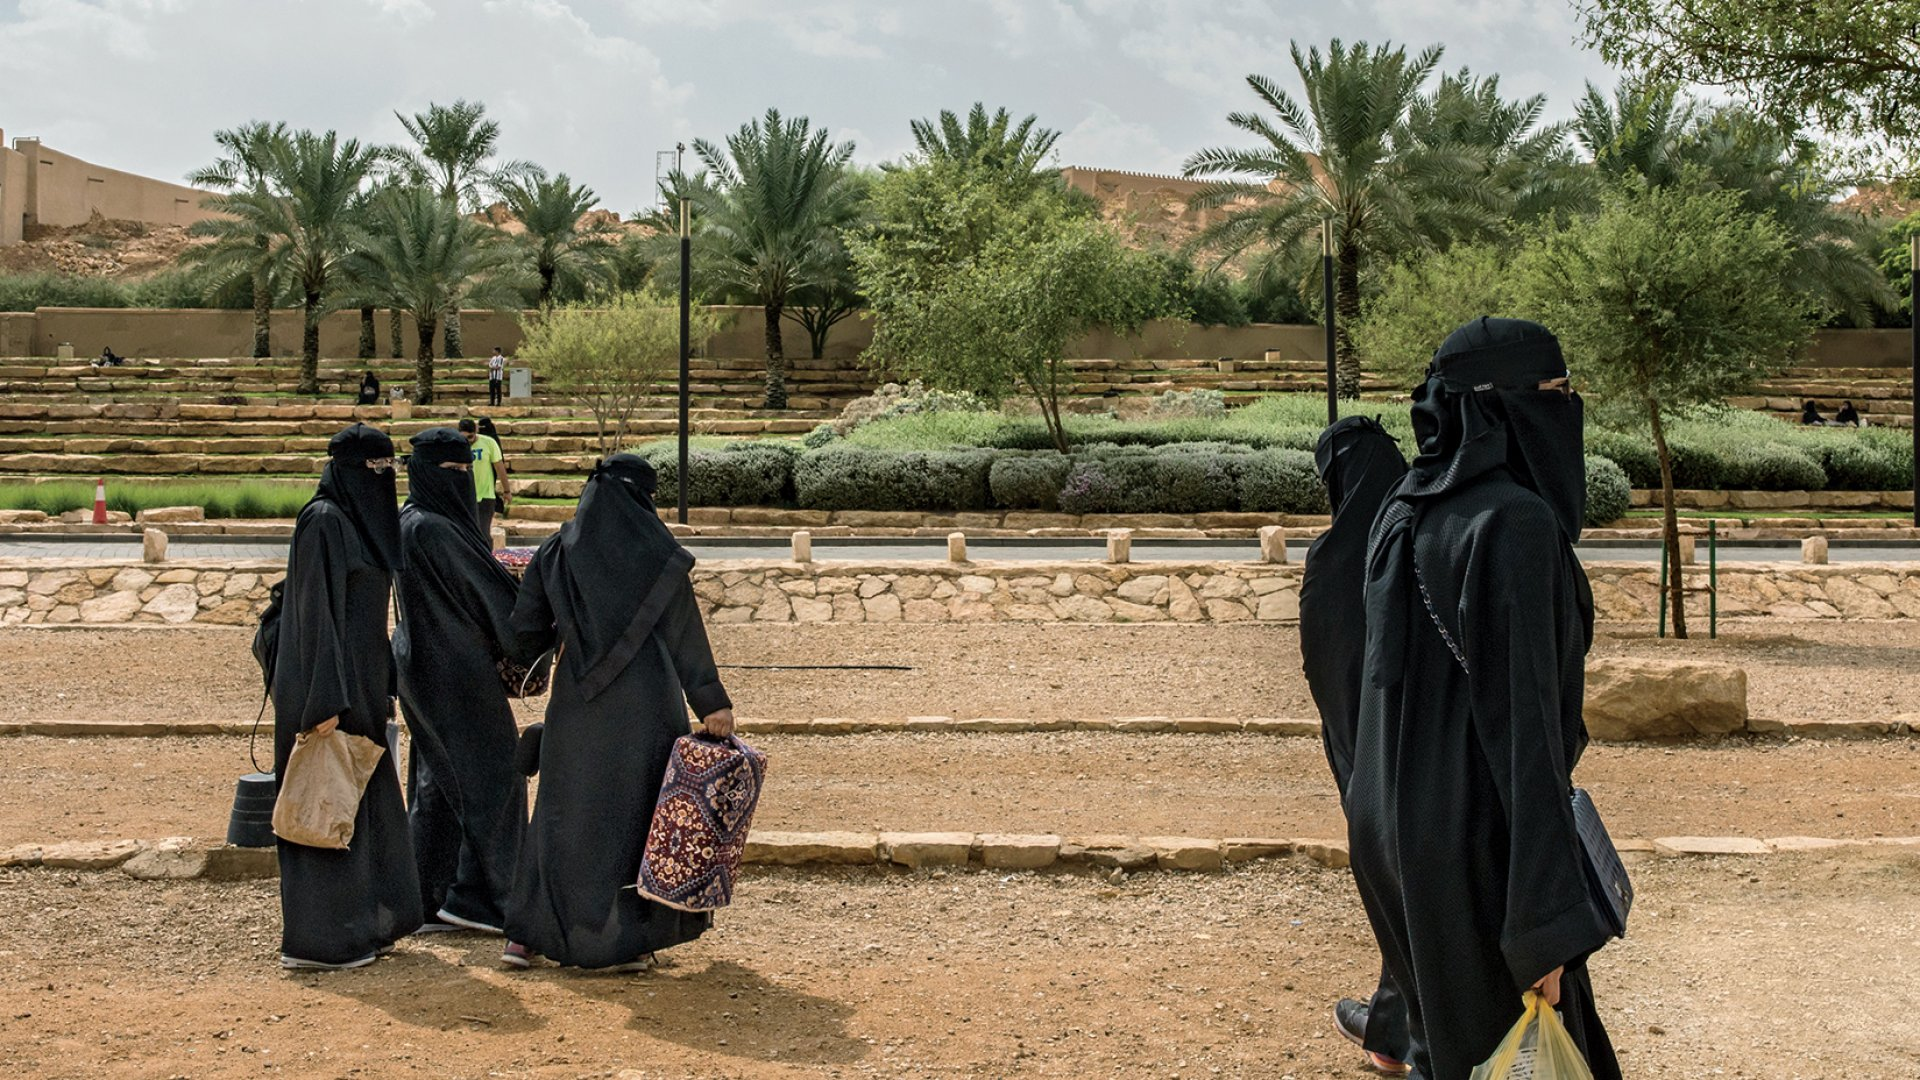 While some Saudi women have stopped covering their hair in public, many in Riyadh--like these, in Diriyah Park--still wear the hijab (headscarf) and niqab (facial veil). Social reforms are happening slowly--women are now allowed to drive, but they still can't leave the country without permission from a male guardian.